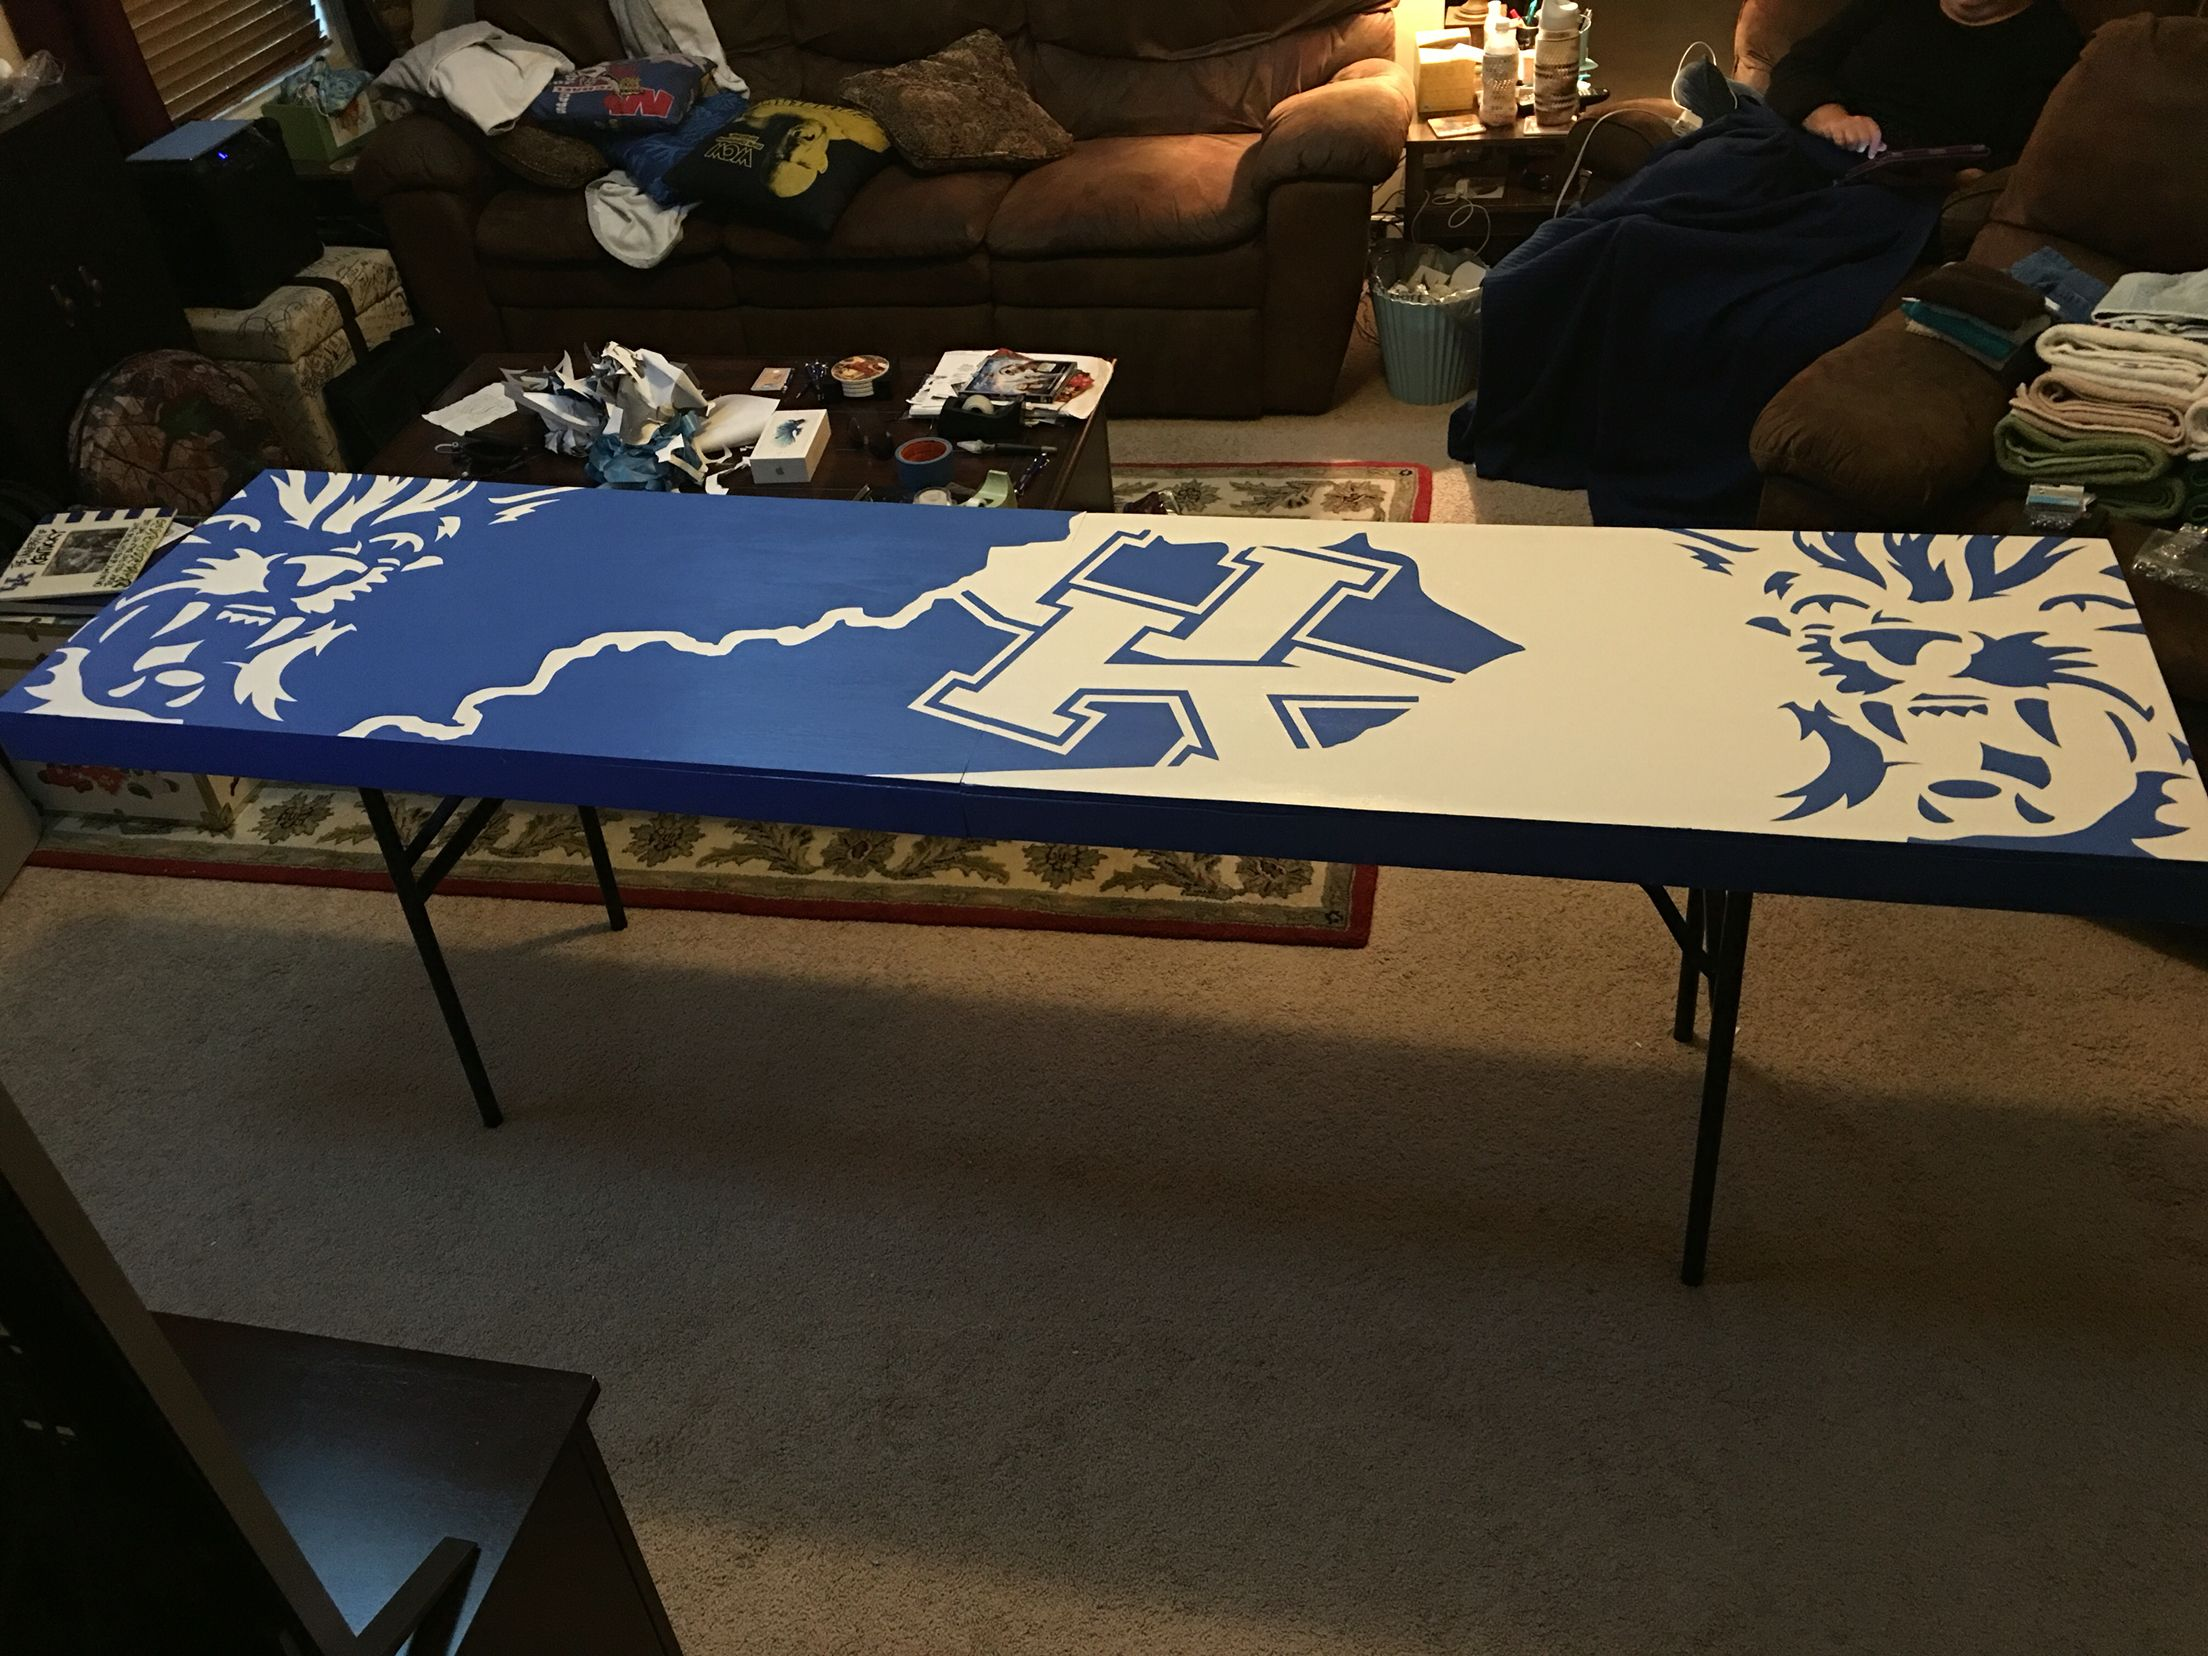 Woodworking Fish S Designs Llc United States Beer Pong Table Designs Fall Decor Dollar Tree Beer Pong Tables